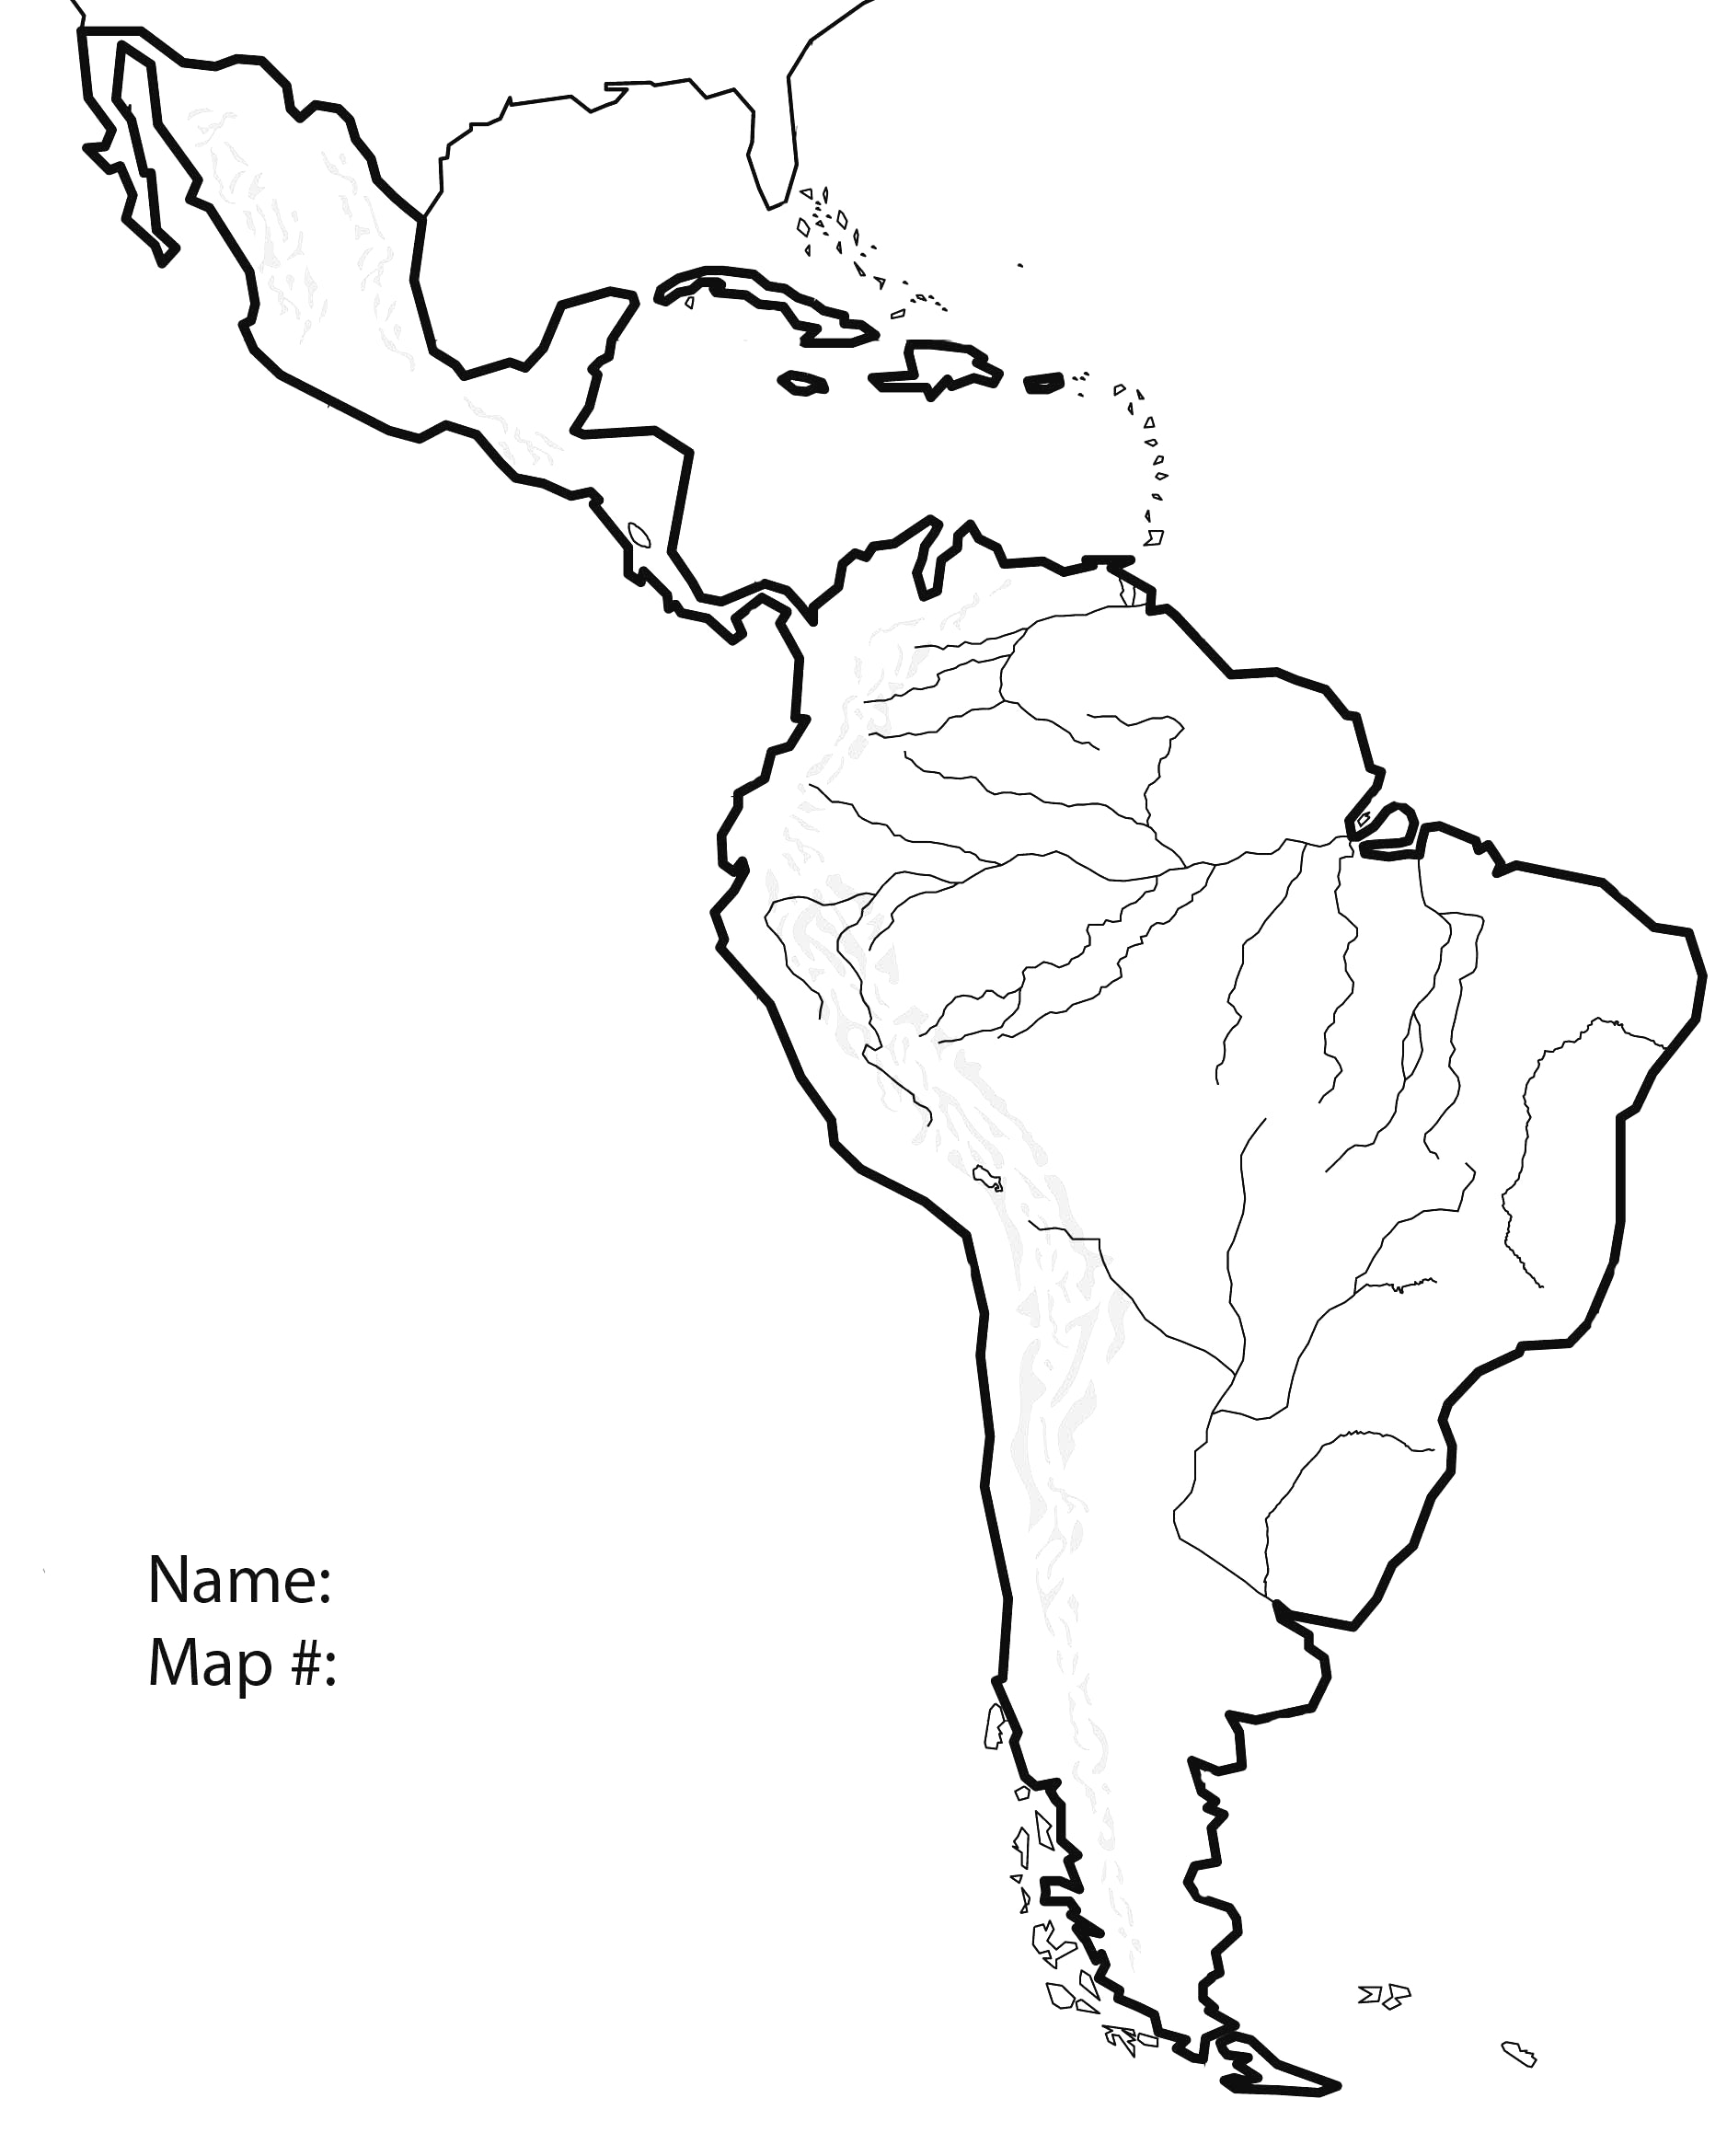 South America Drawing at GetDrawings.com | Free for personal use ...